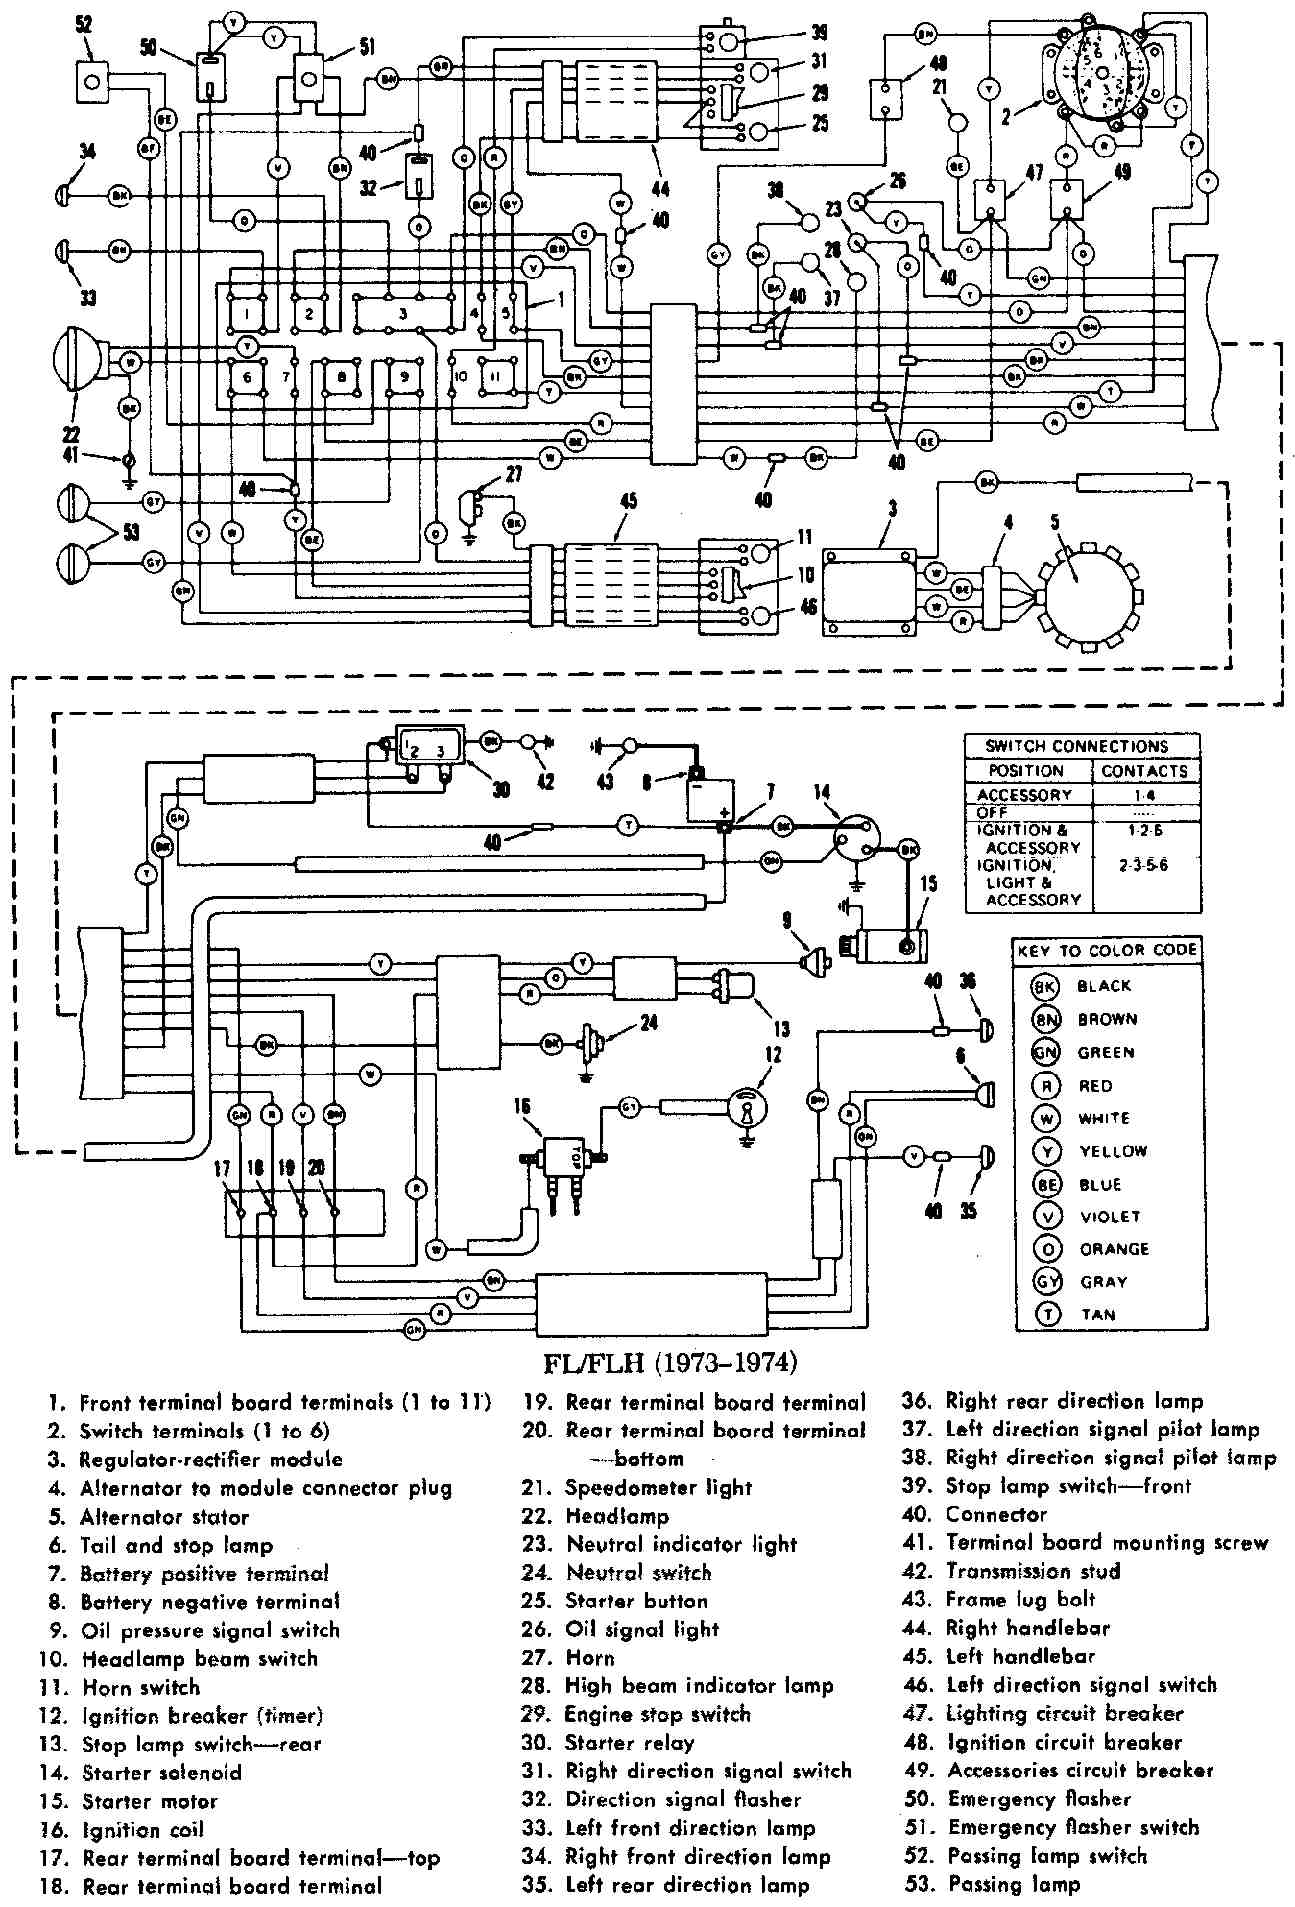 1974 Harley Davidson Golf Cart Wiring Diagram - Schematics ... on